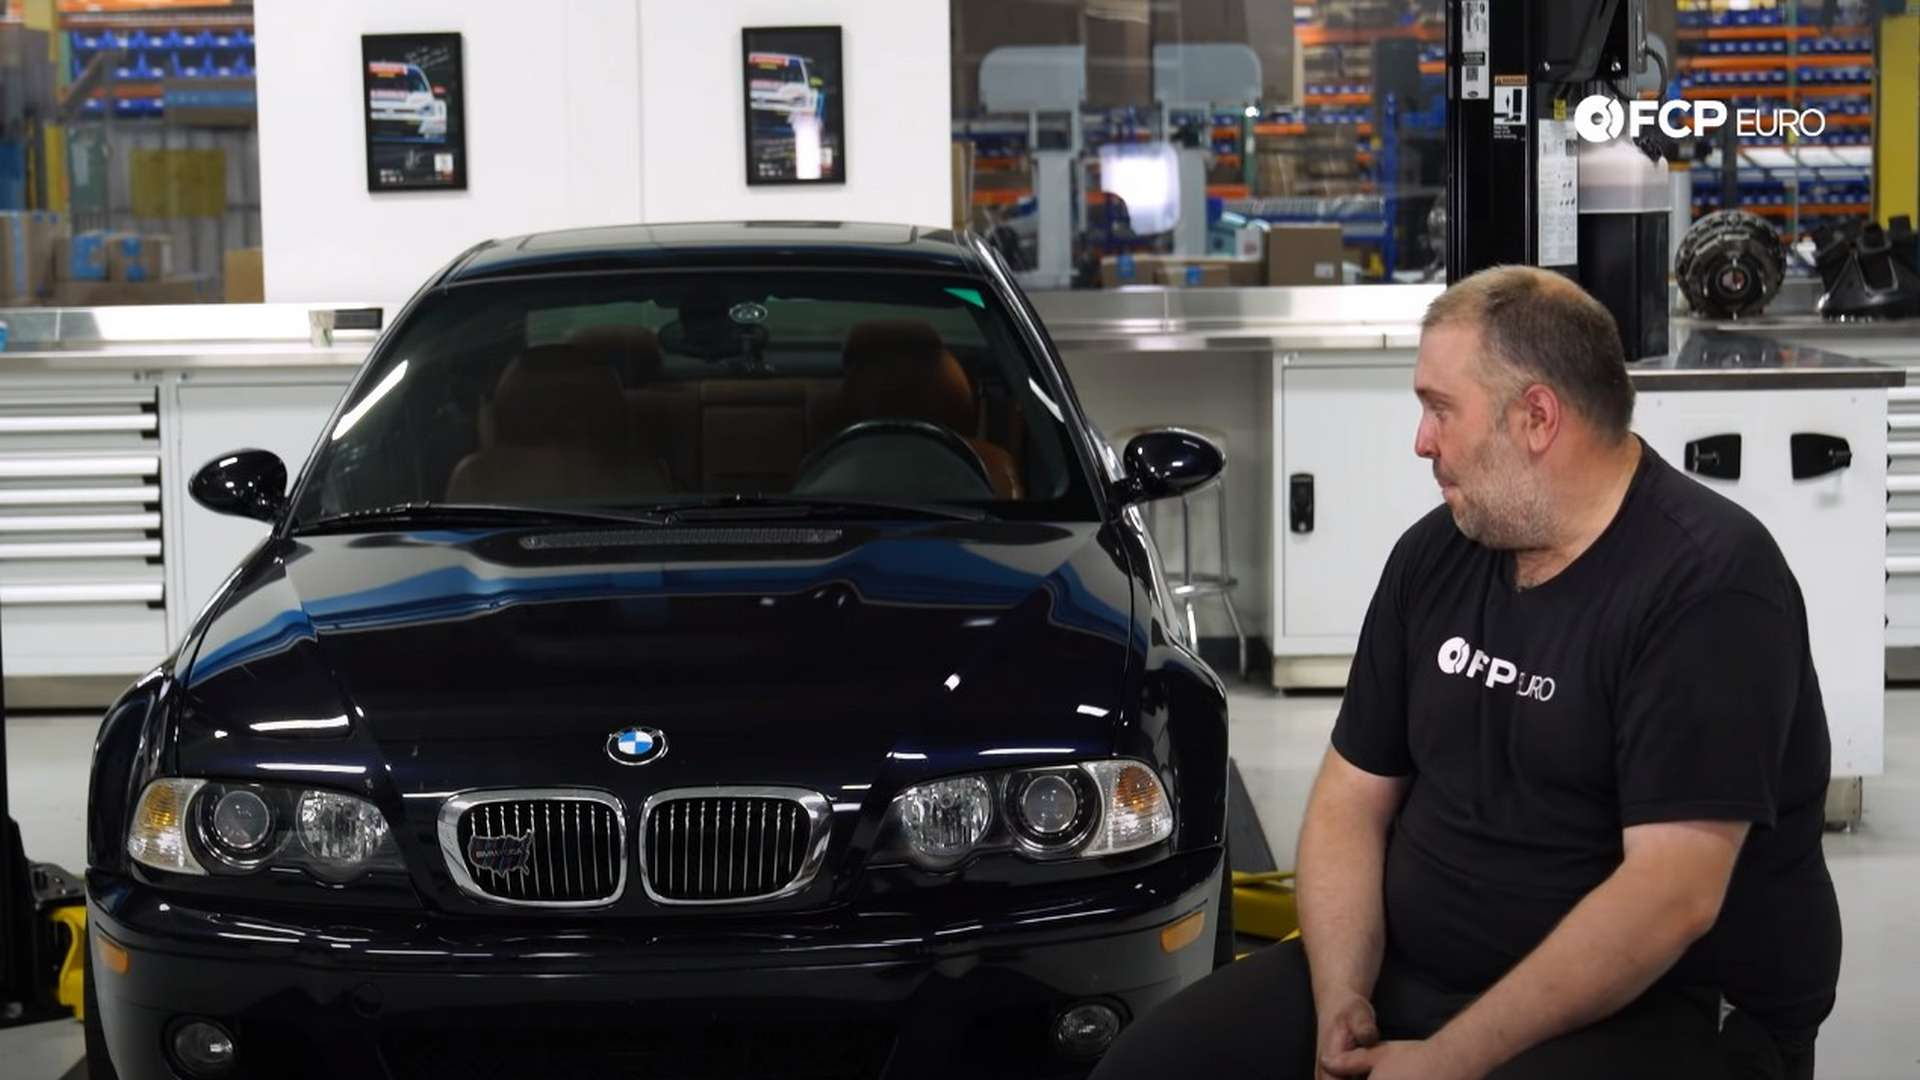 How To Overhaul The BMW E46 M3 Rear Subframe (Part 3)